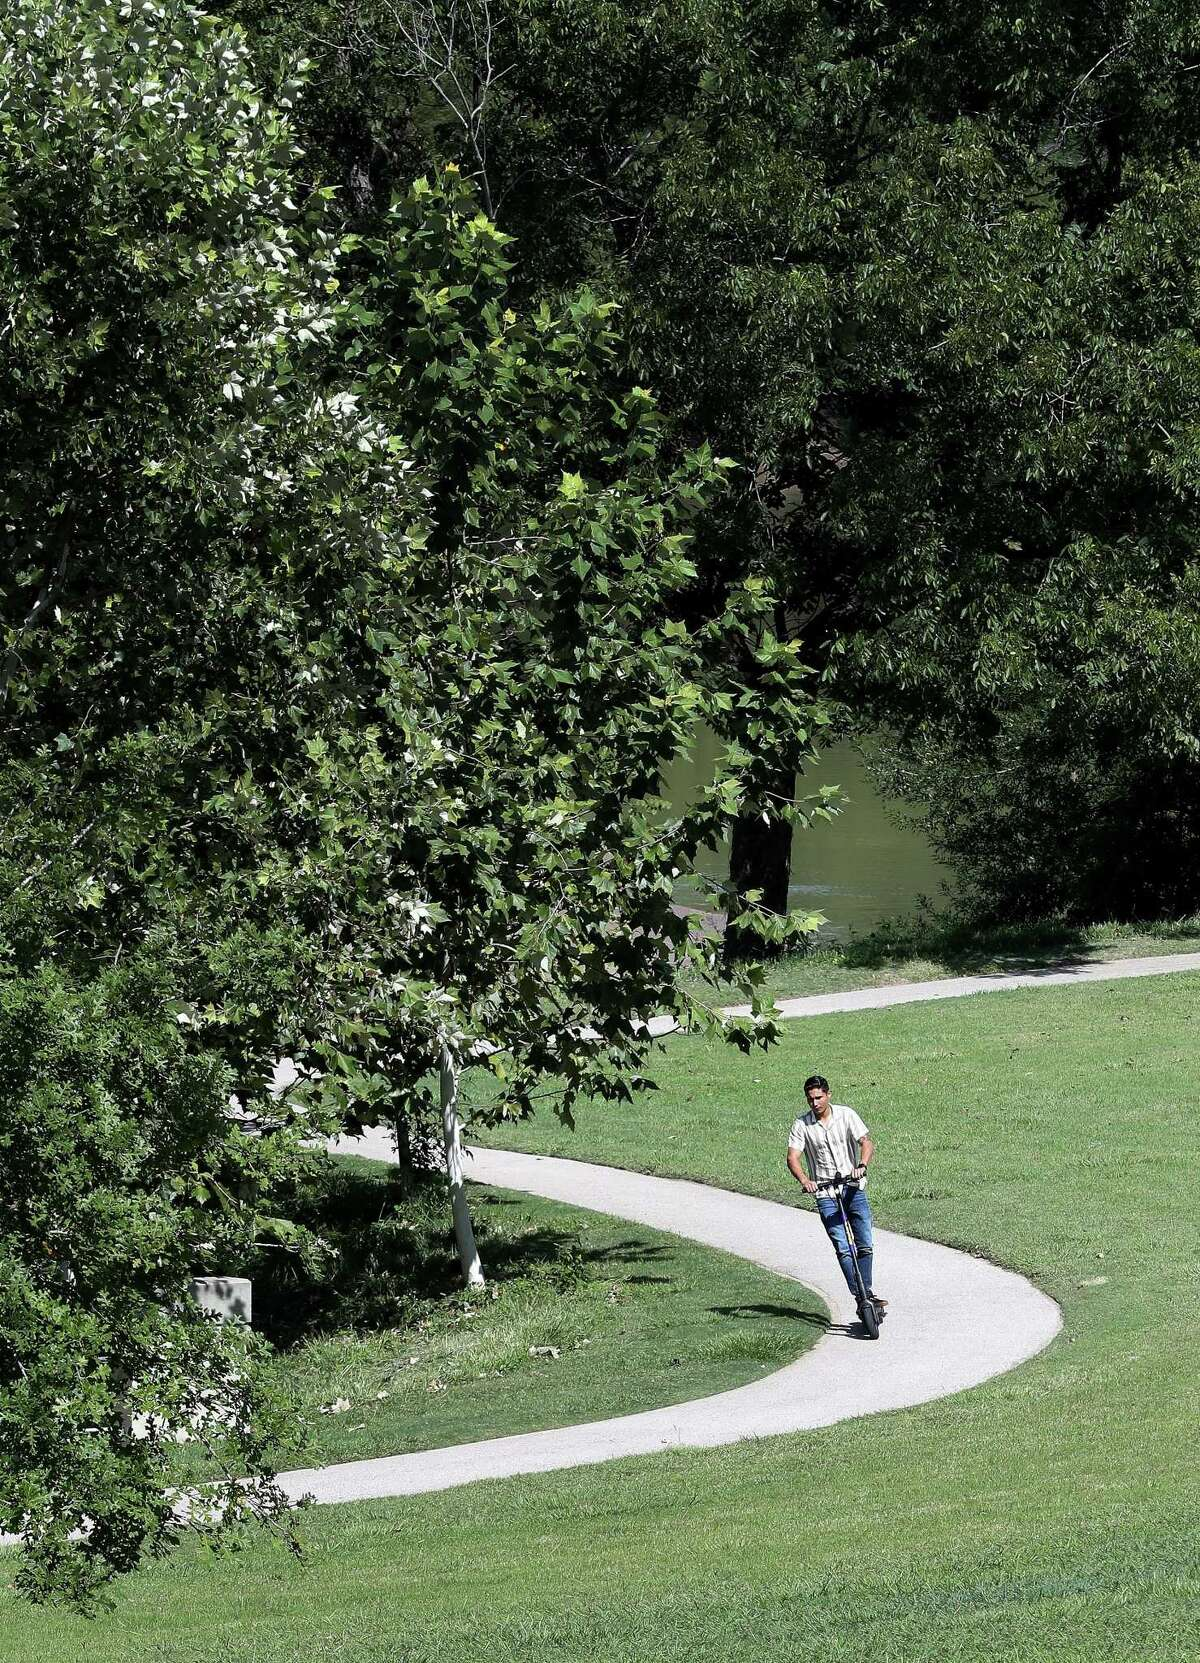 A man on a scooter rides in Eleanor Tinsley Park near Buffalo Bayou, Wednesday, September 22, 2021, in Houston.